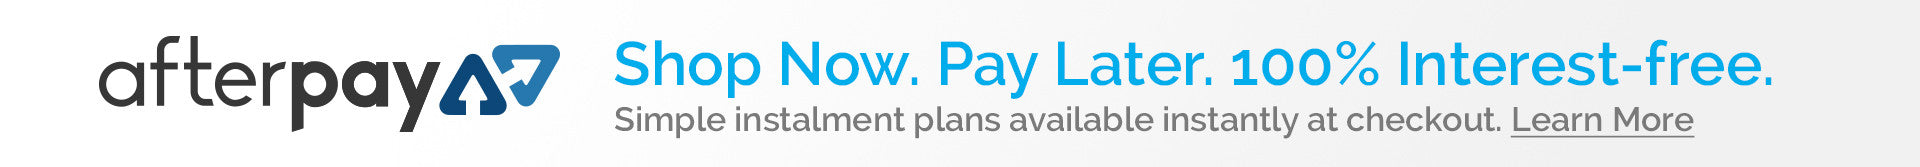 Shop NOW pay LATER - afterpay